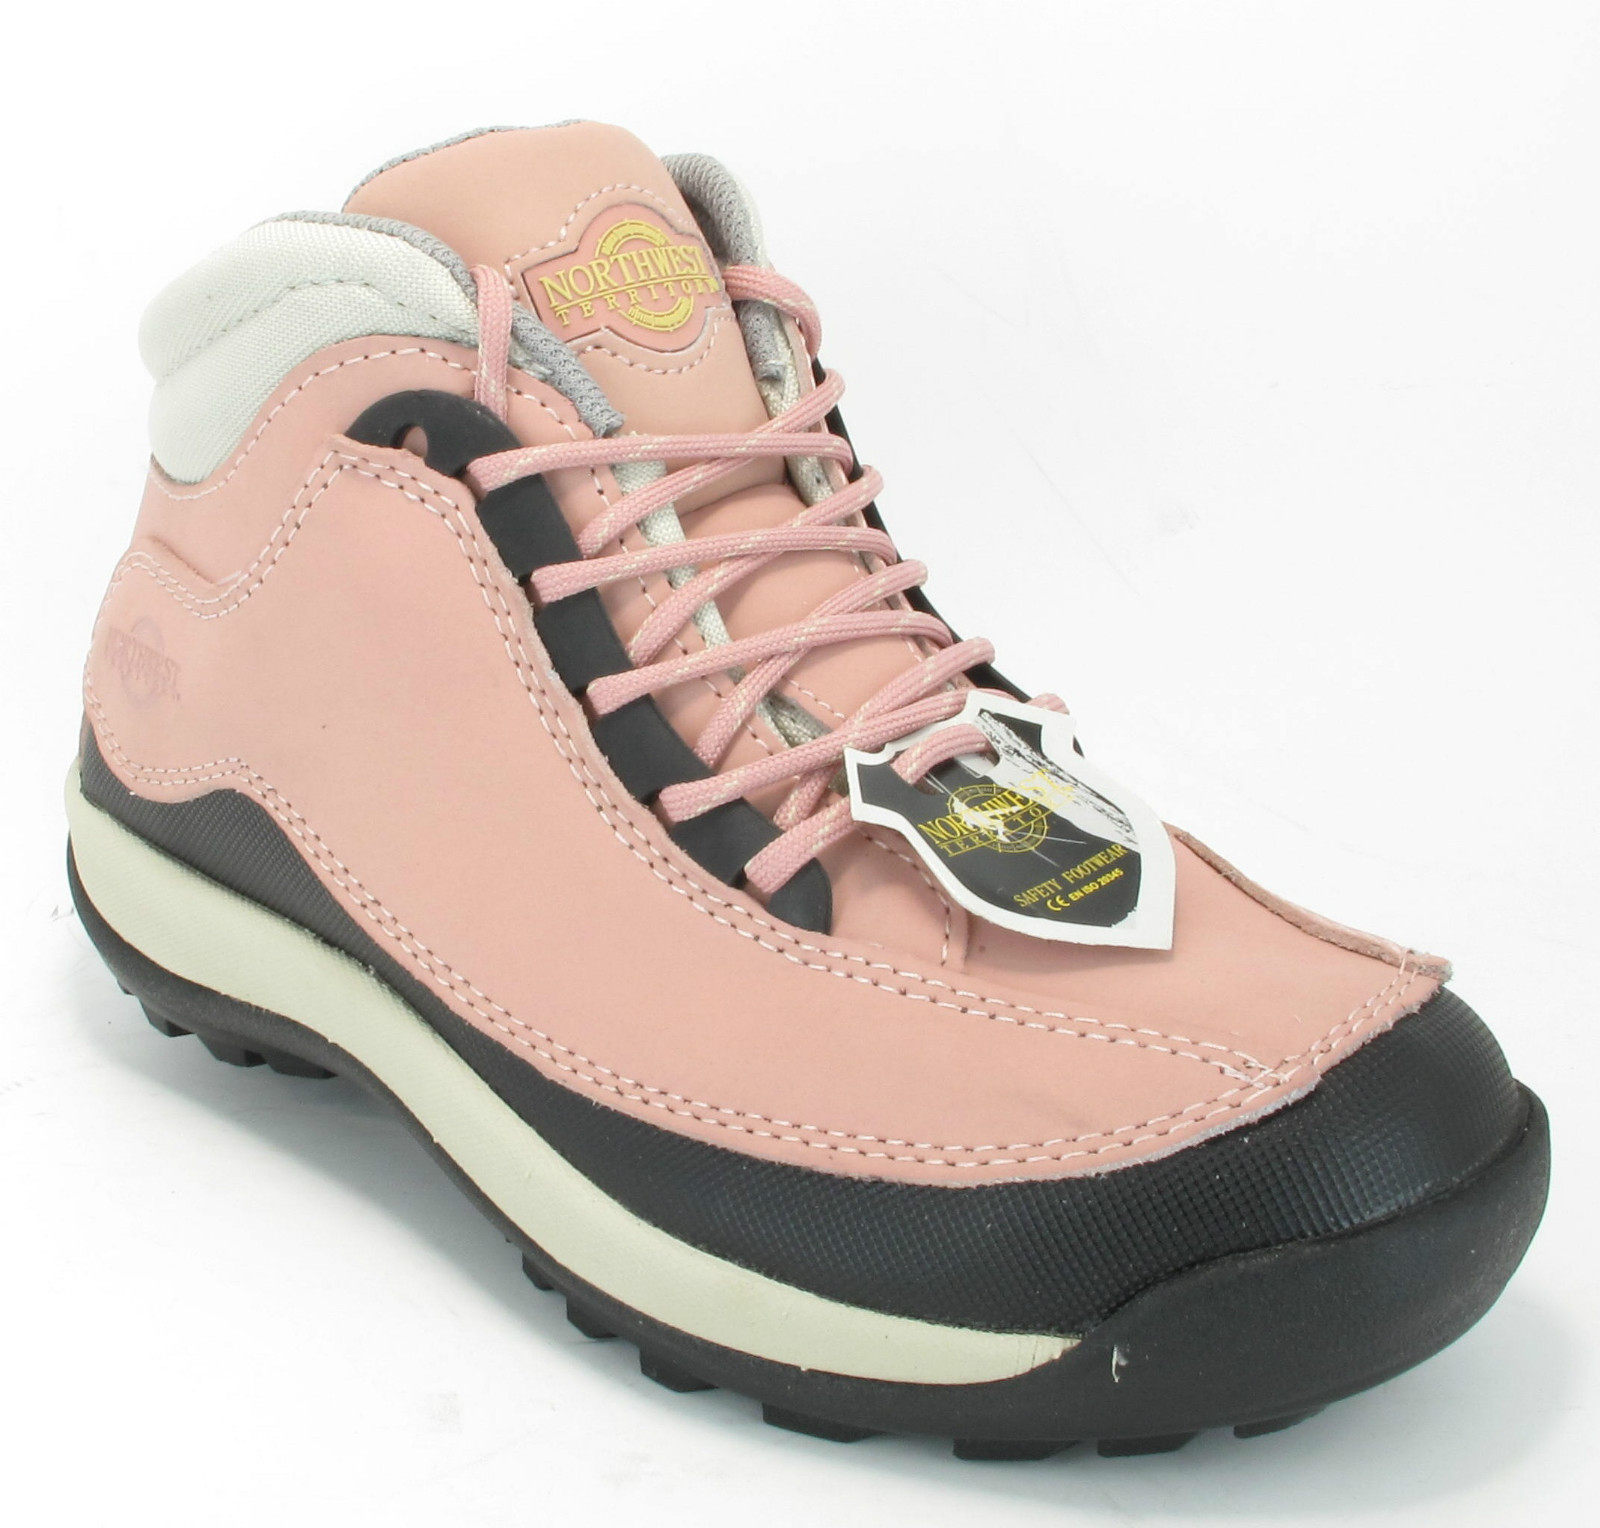 womens light weight steel toe cap safety work boots size 4